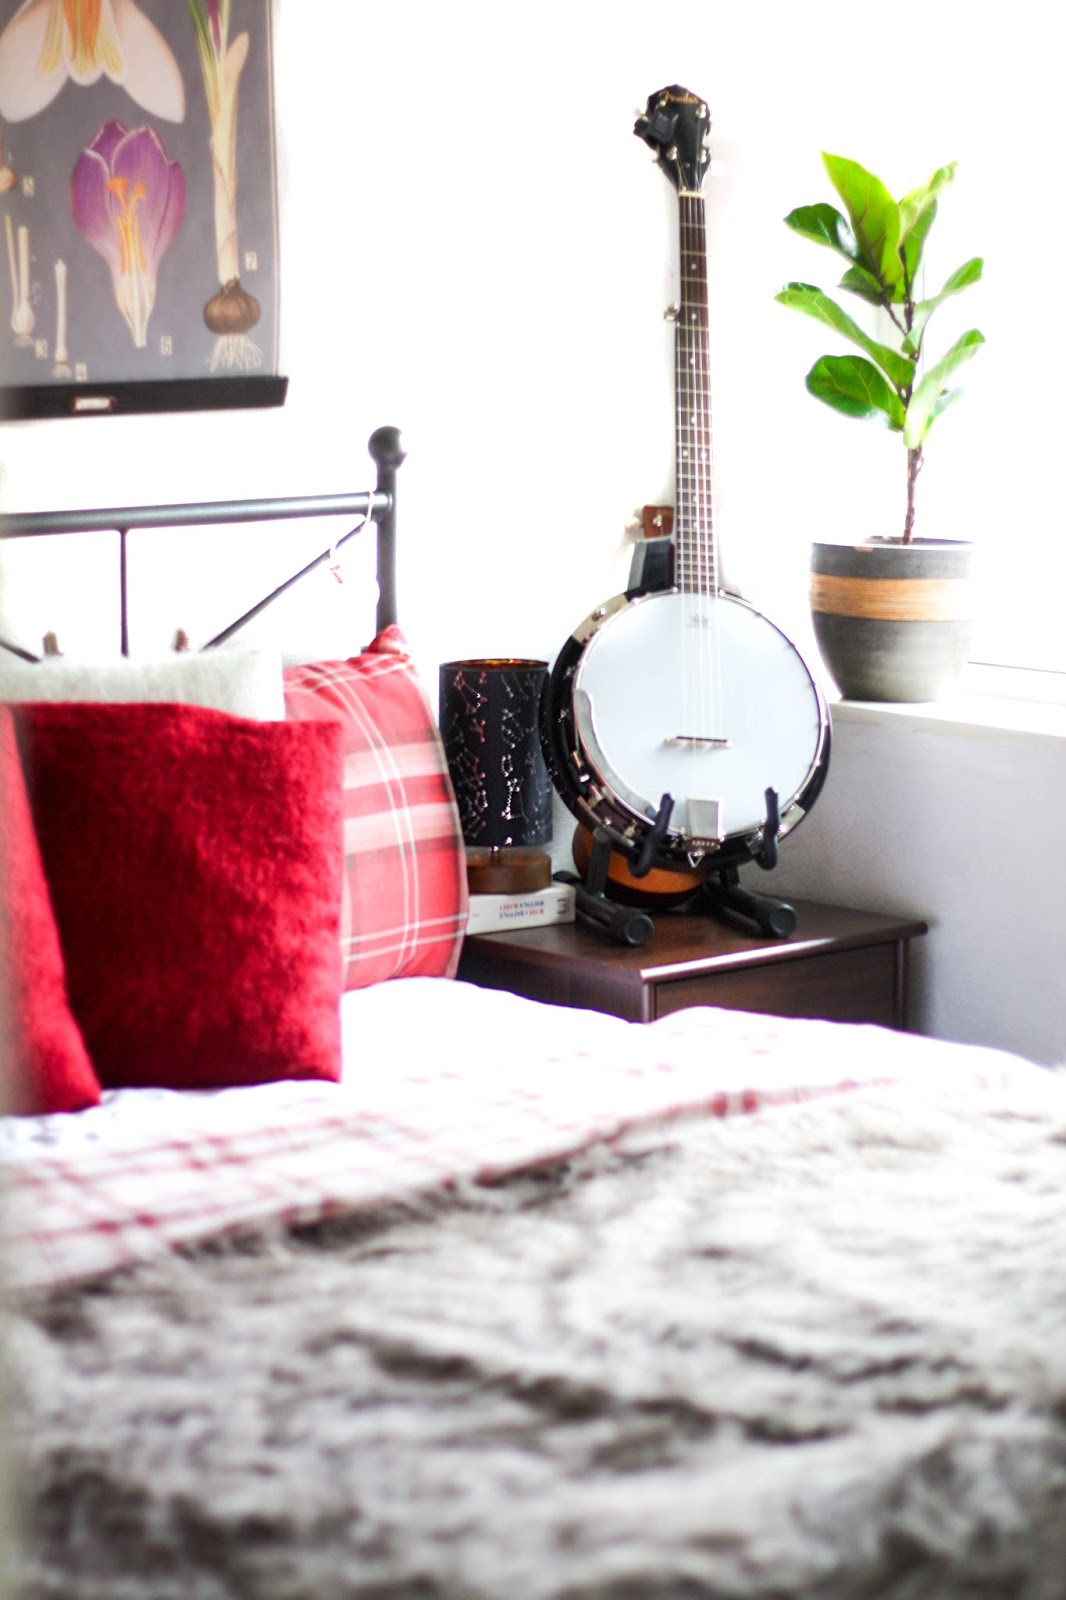 5 ingredients for a cosy bedroom